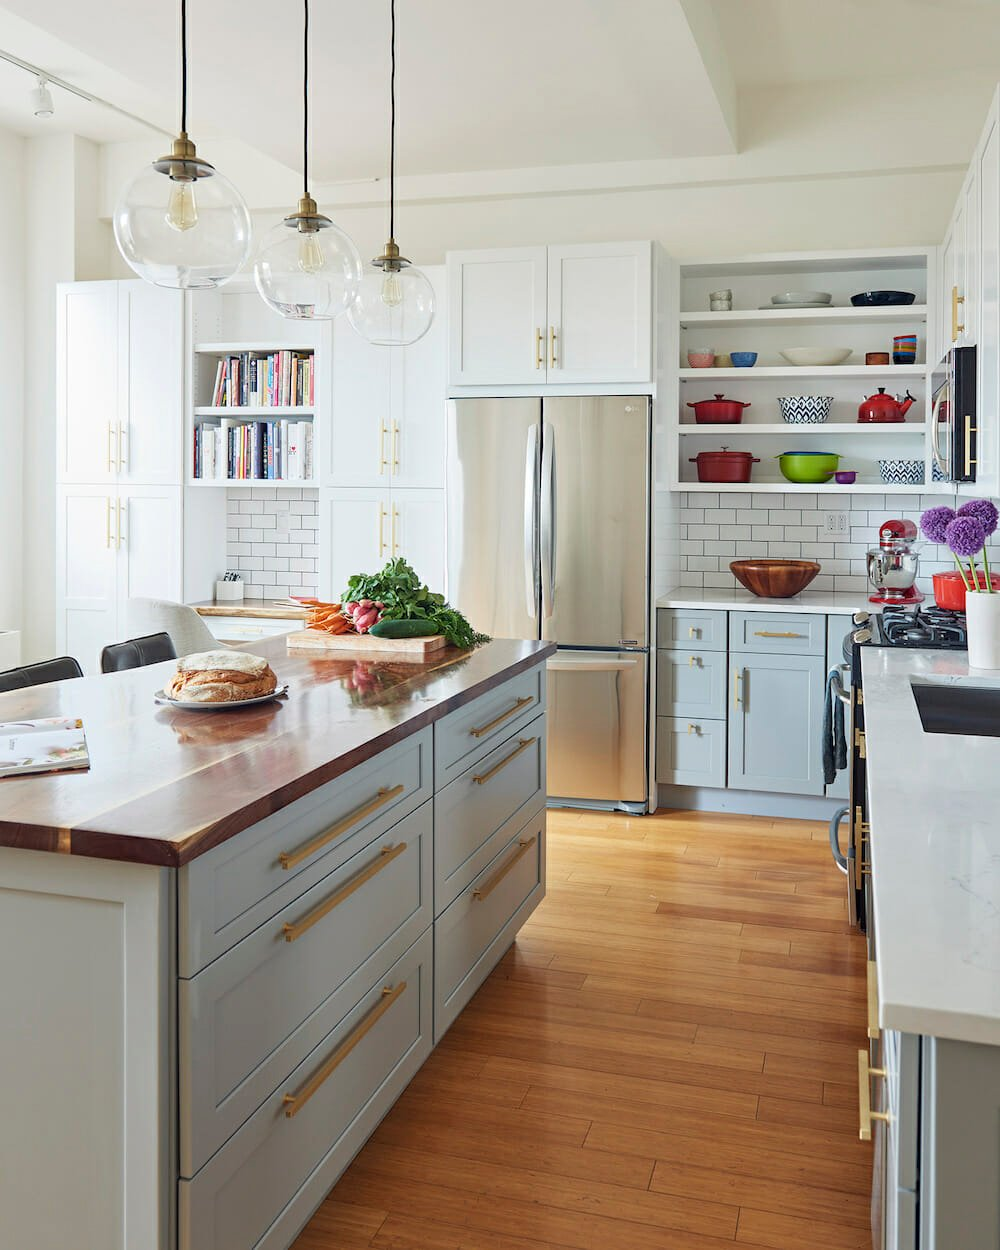 l-shaped kitchen layout with island